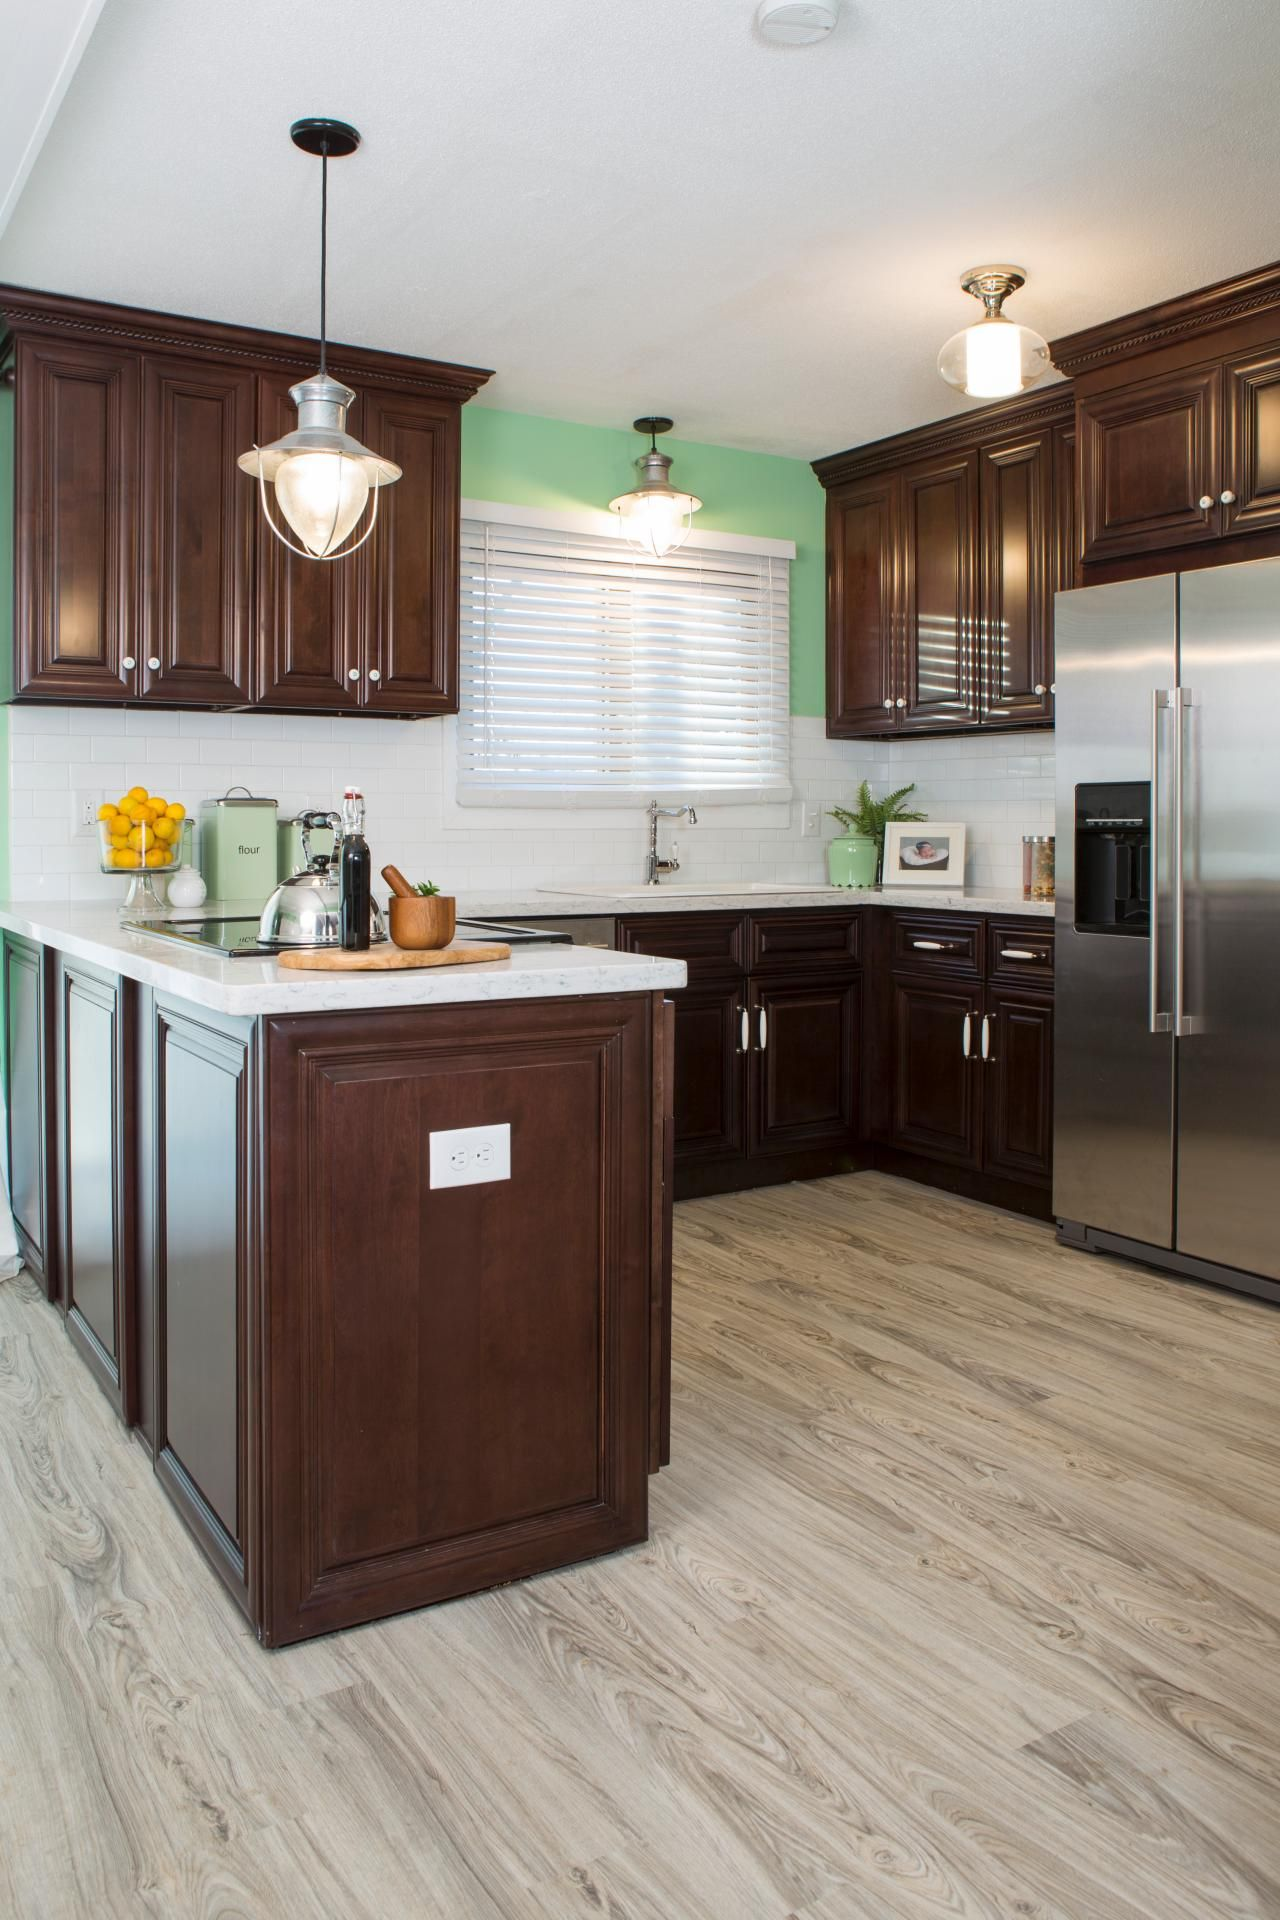 Best Small Kitchen Design With Cherry Wood Cabinets Green 400 x 300